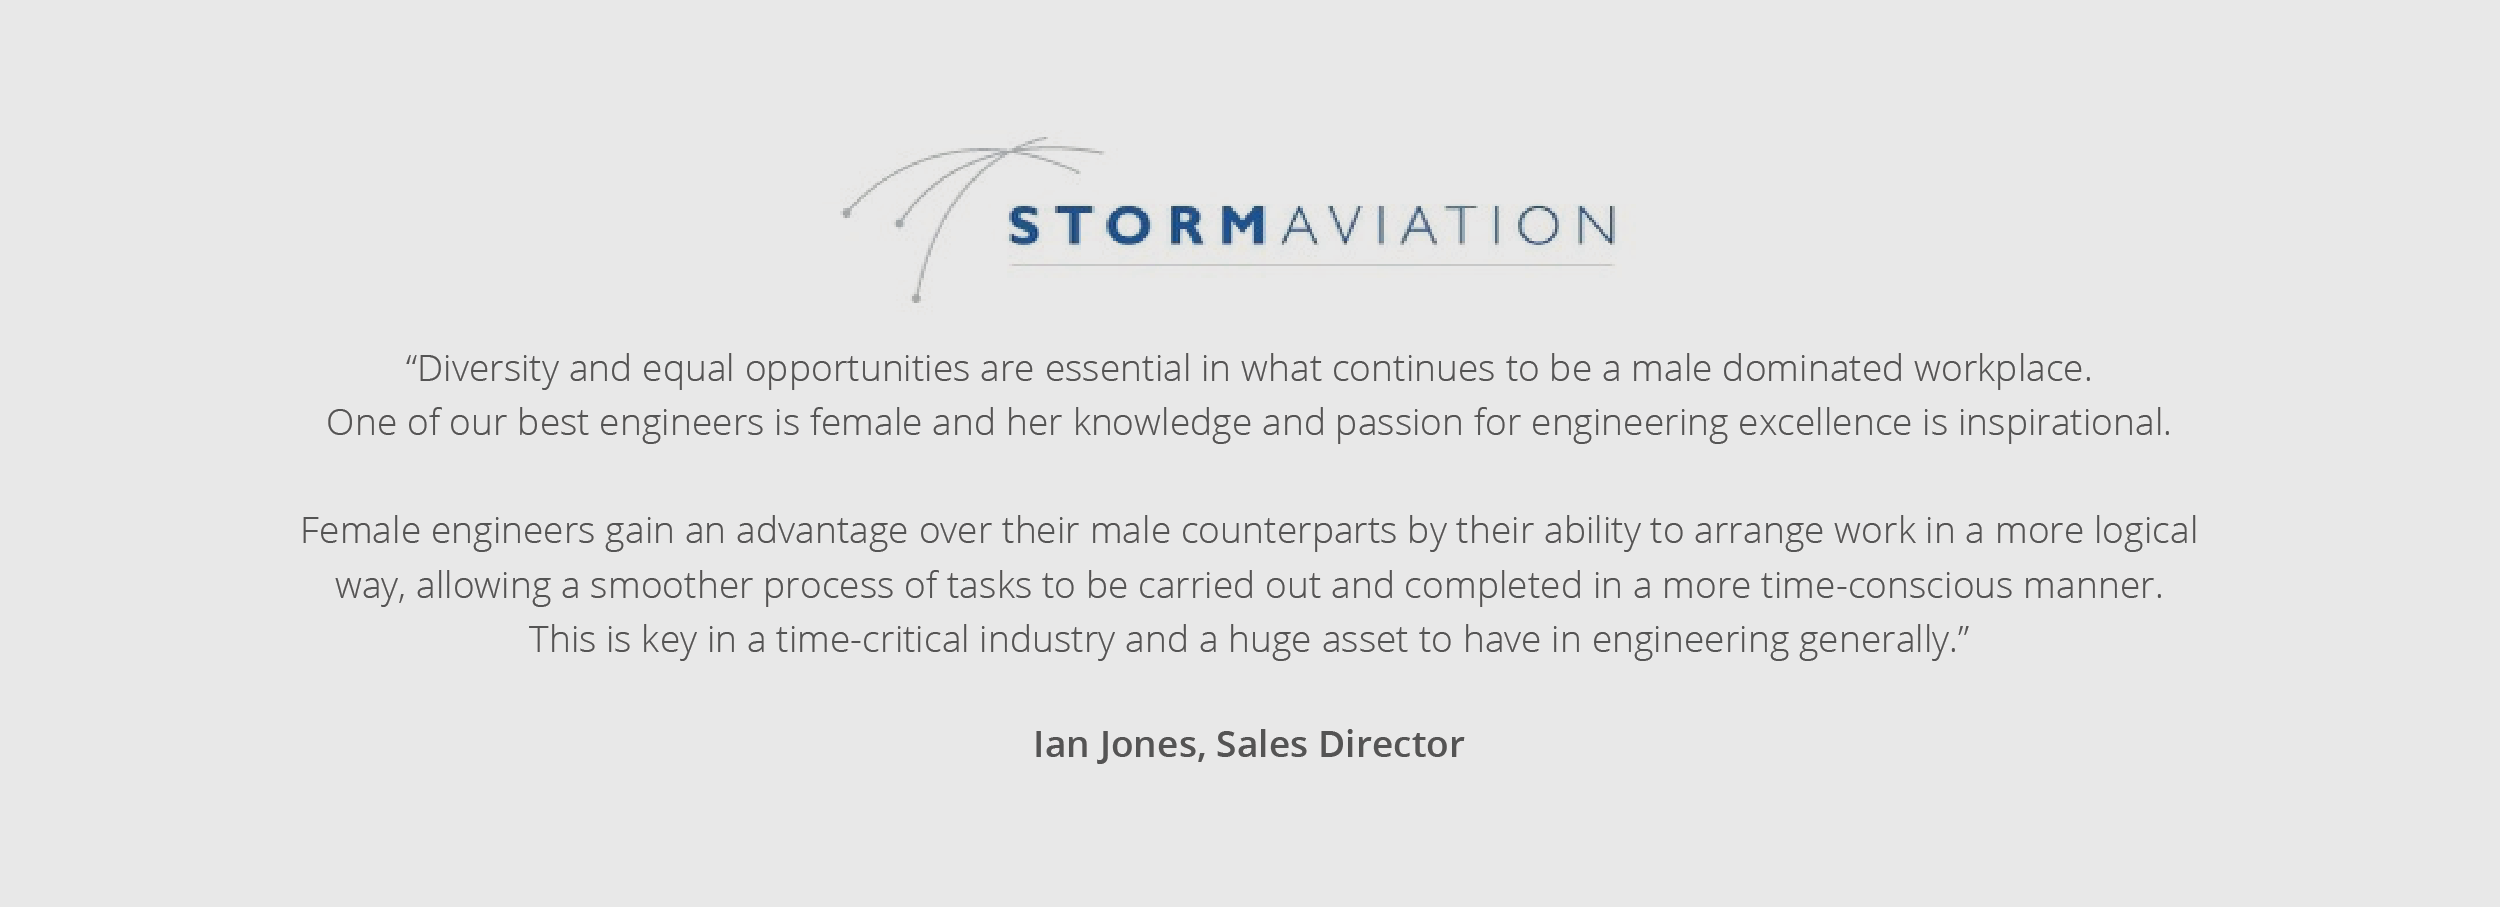 Storm Aviation quote